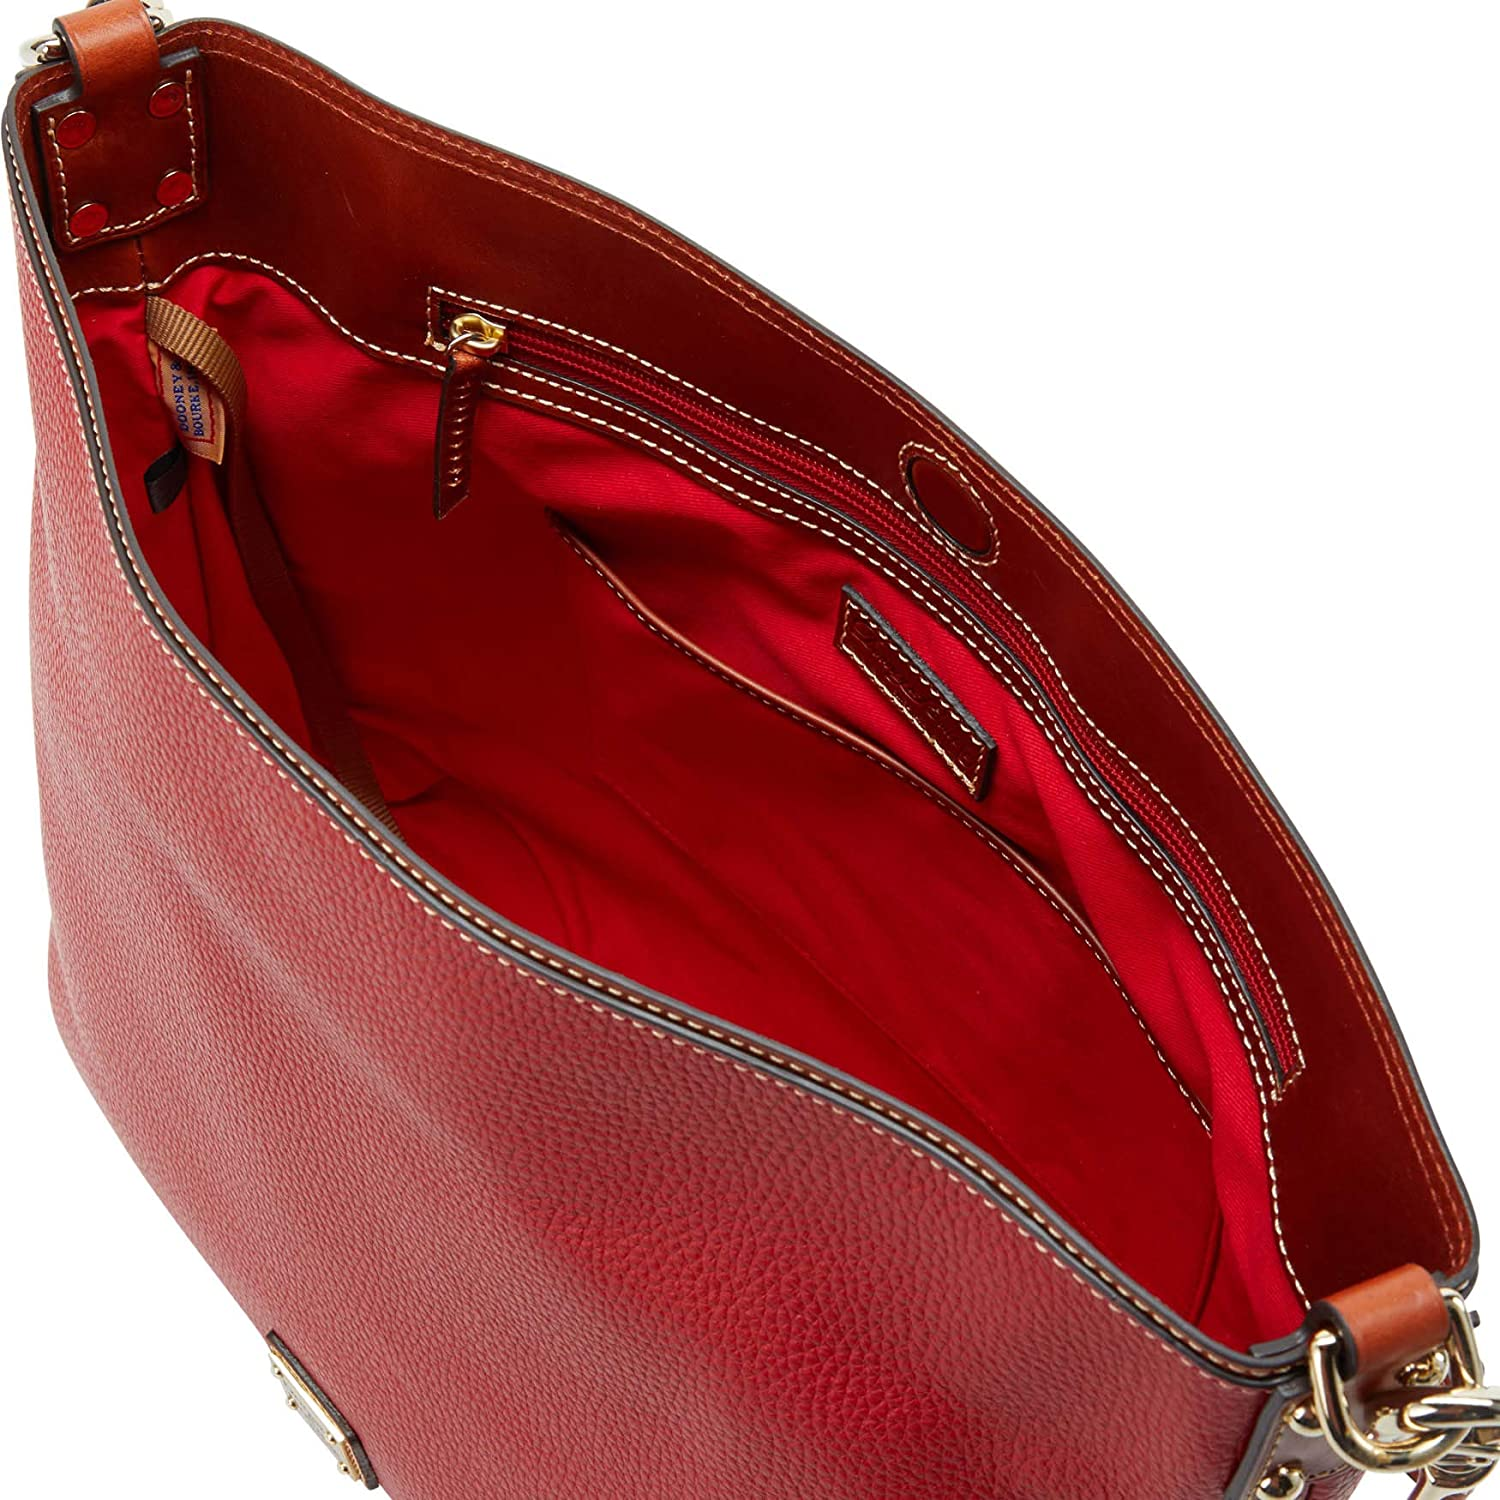 0ae4ca243b Dooney & Bourke Pebble Grain Extra Large Courtney Sac Shoulder Bag:  Handbags: Amazon.com